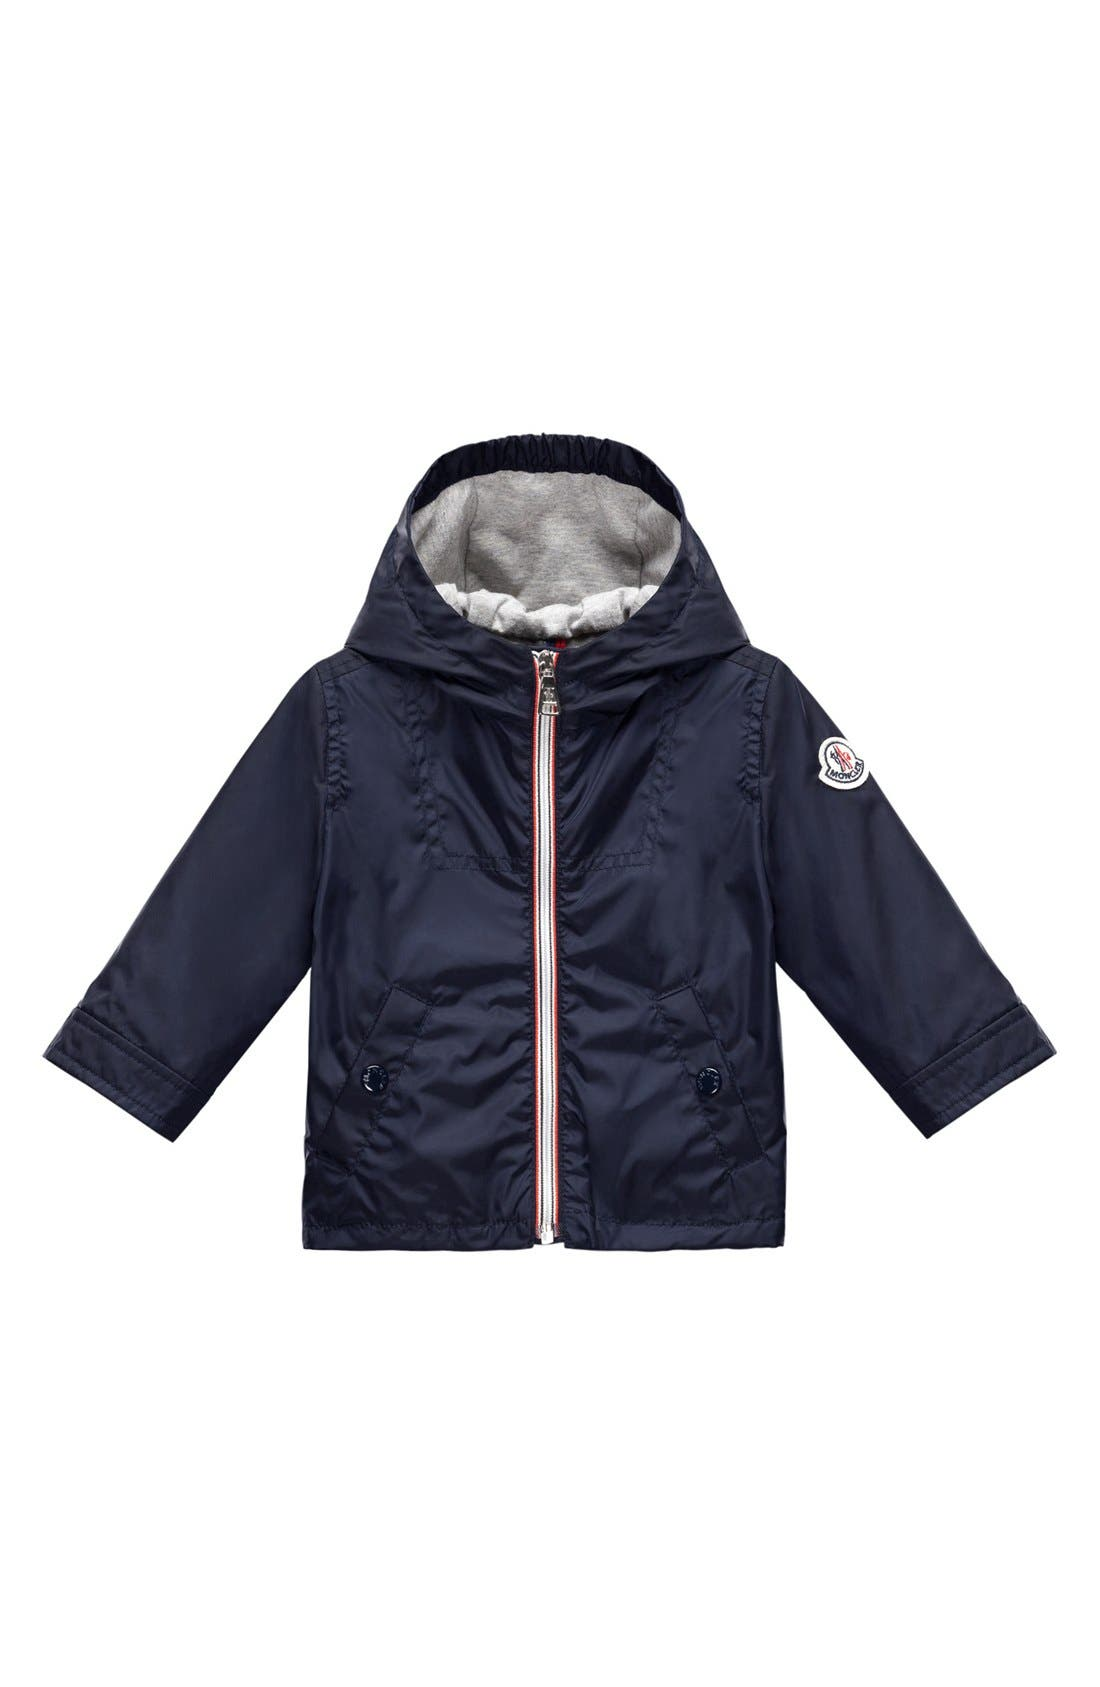 Alternate Image 1 Selected - Moncler Hooded Jacket (Baby Boys)